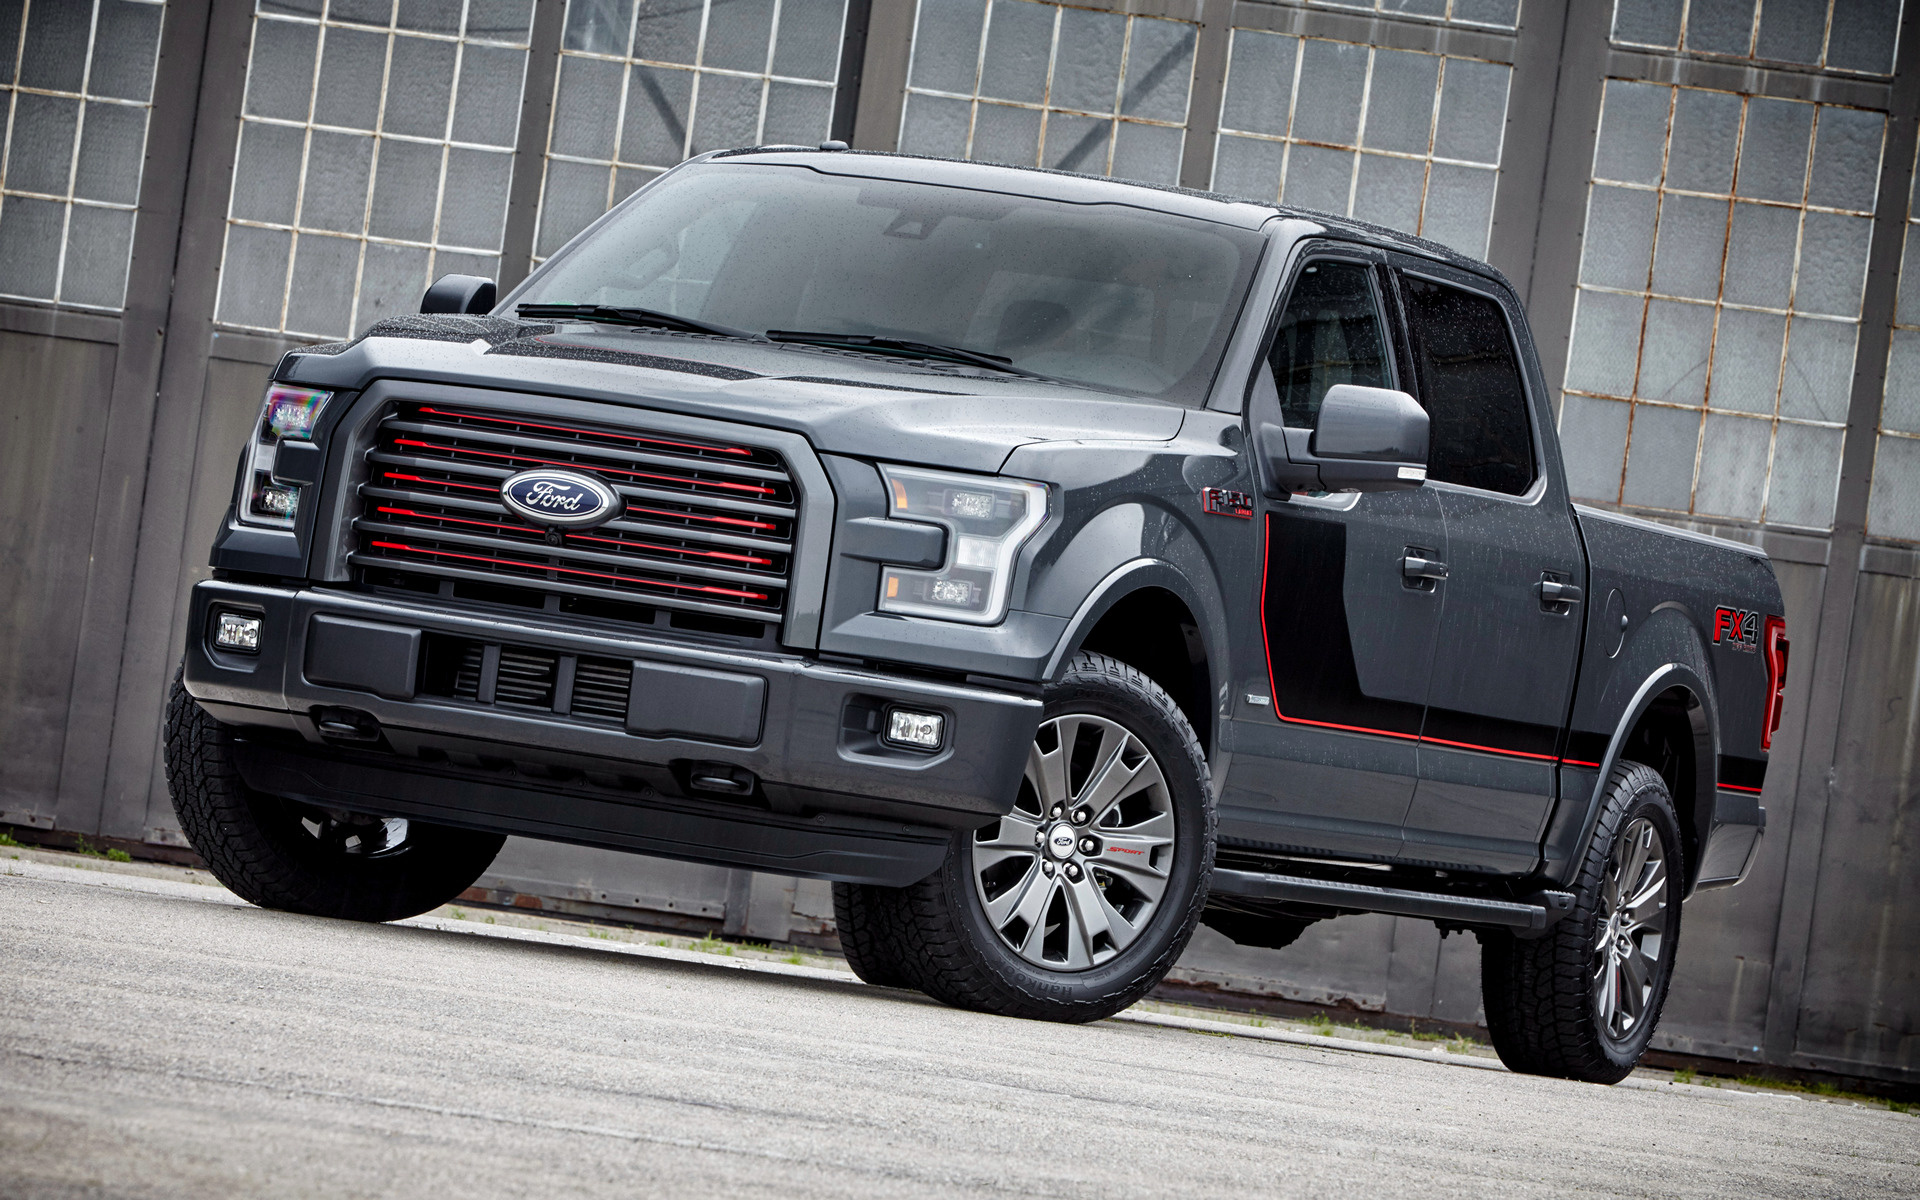 Ford F 150 Lariat FX4 SuperCrew Appearance Package 2016 Wallpapers 1920x1200